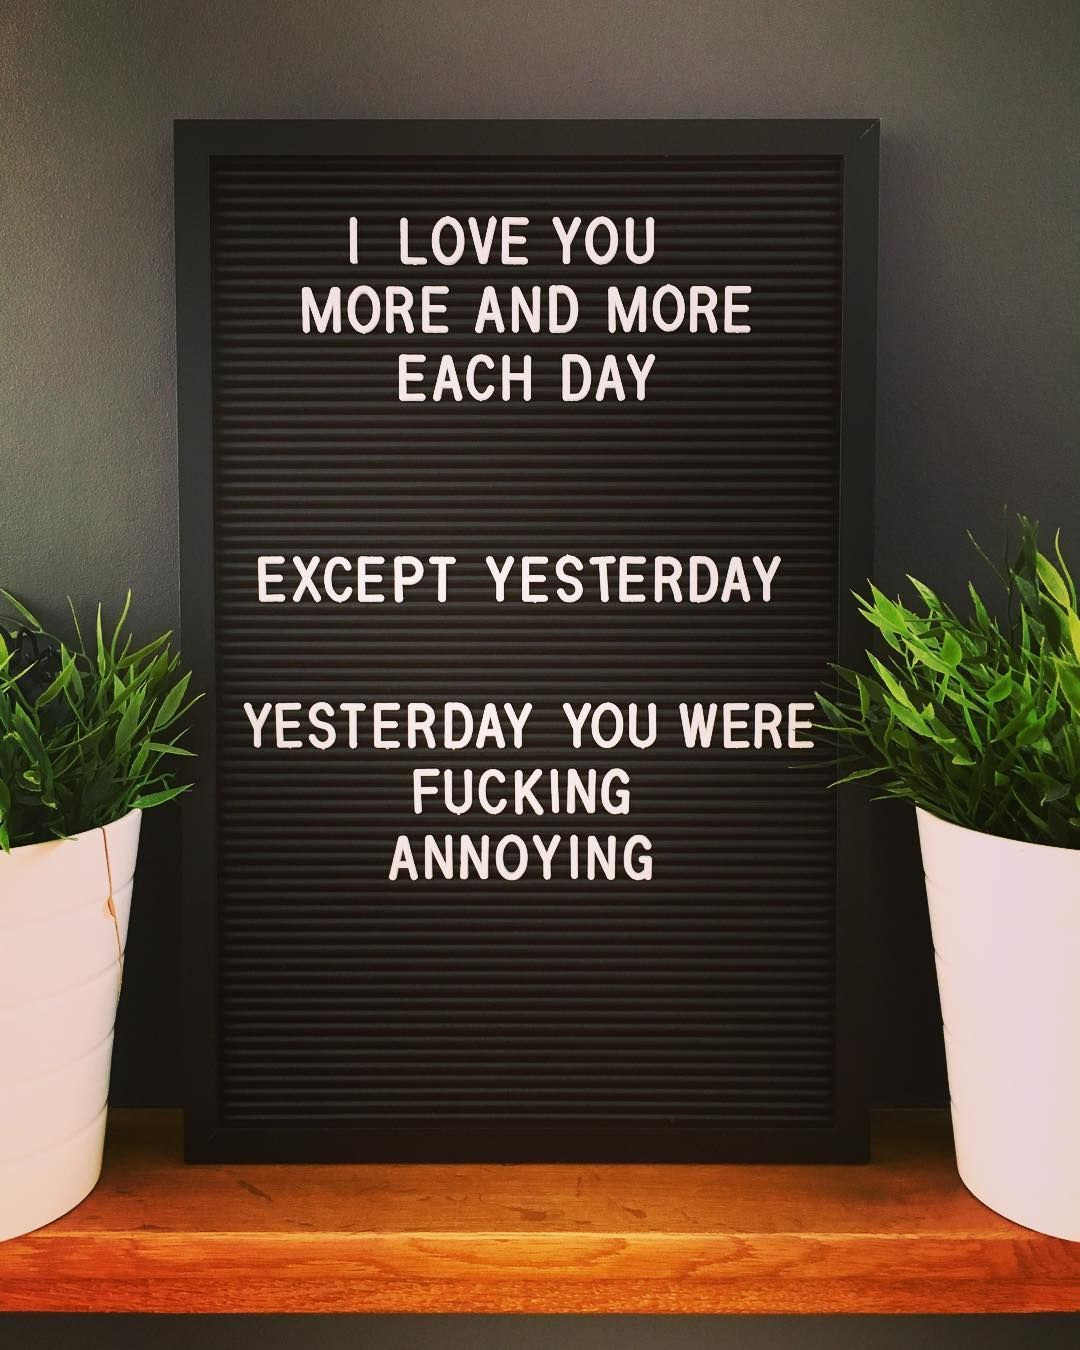 Pin By Lauren Landers On Luv Message Board Quotes Letter Board Funny Letters